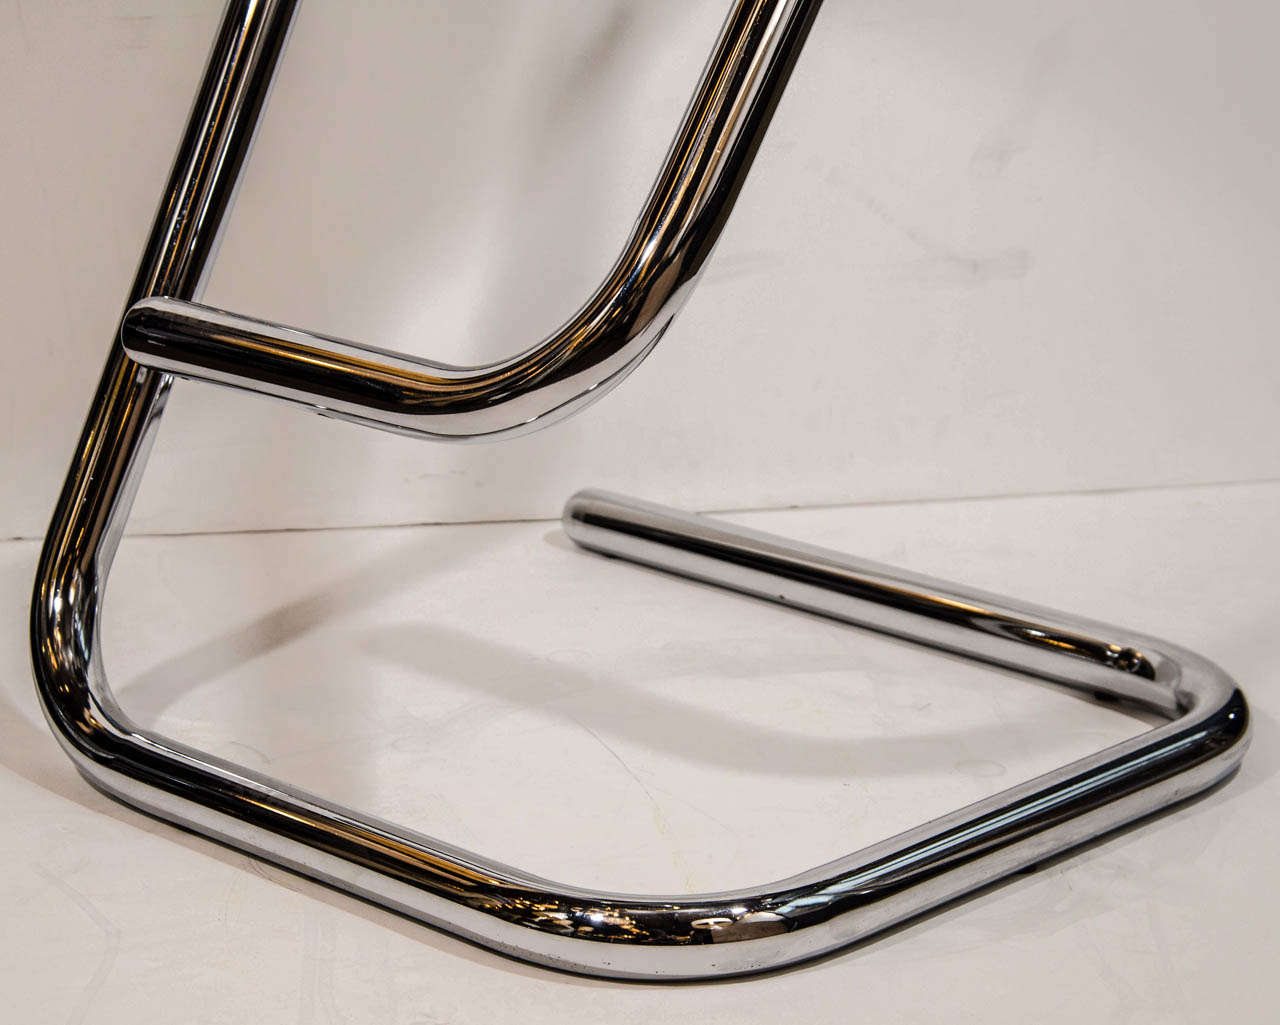 Pair Of Italian Modernist Lucite Bar Stools With Tubular